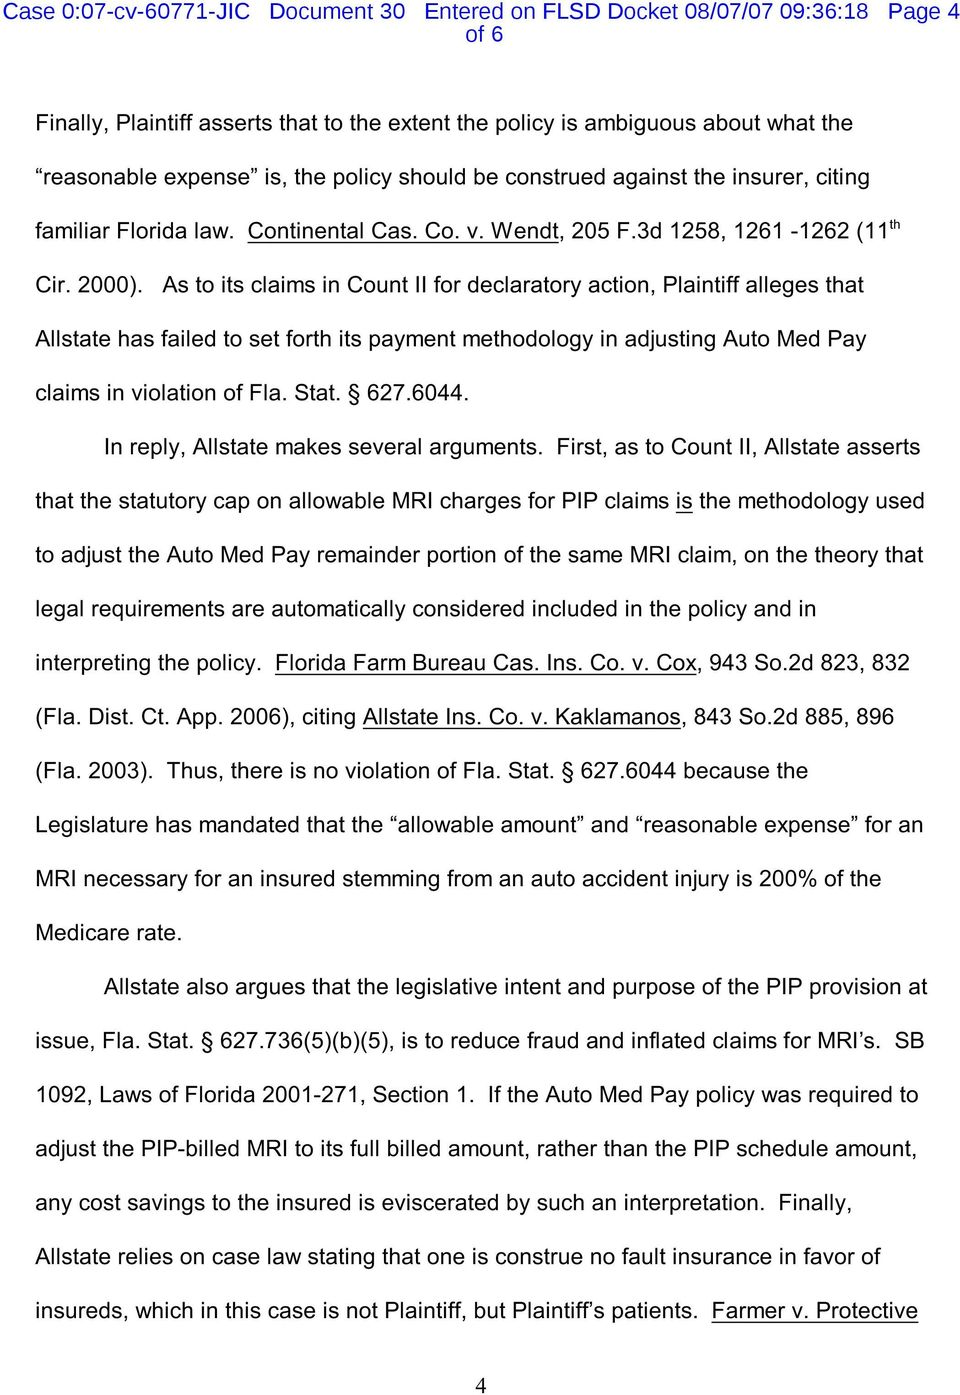 As to its claims in Count II for declaratory action, Plaintiff alleges that Allstate has failed to set forth its payment methodology in adjusting Auto Med Pay claims in violation of Fla. Stat. 627.